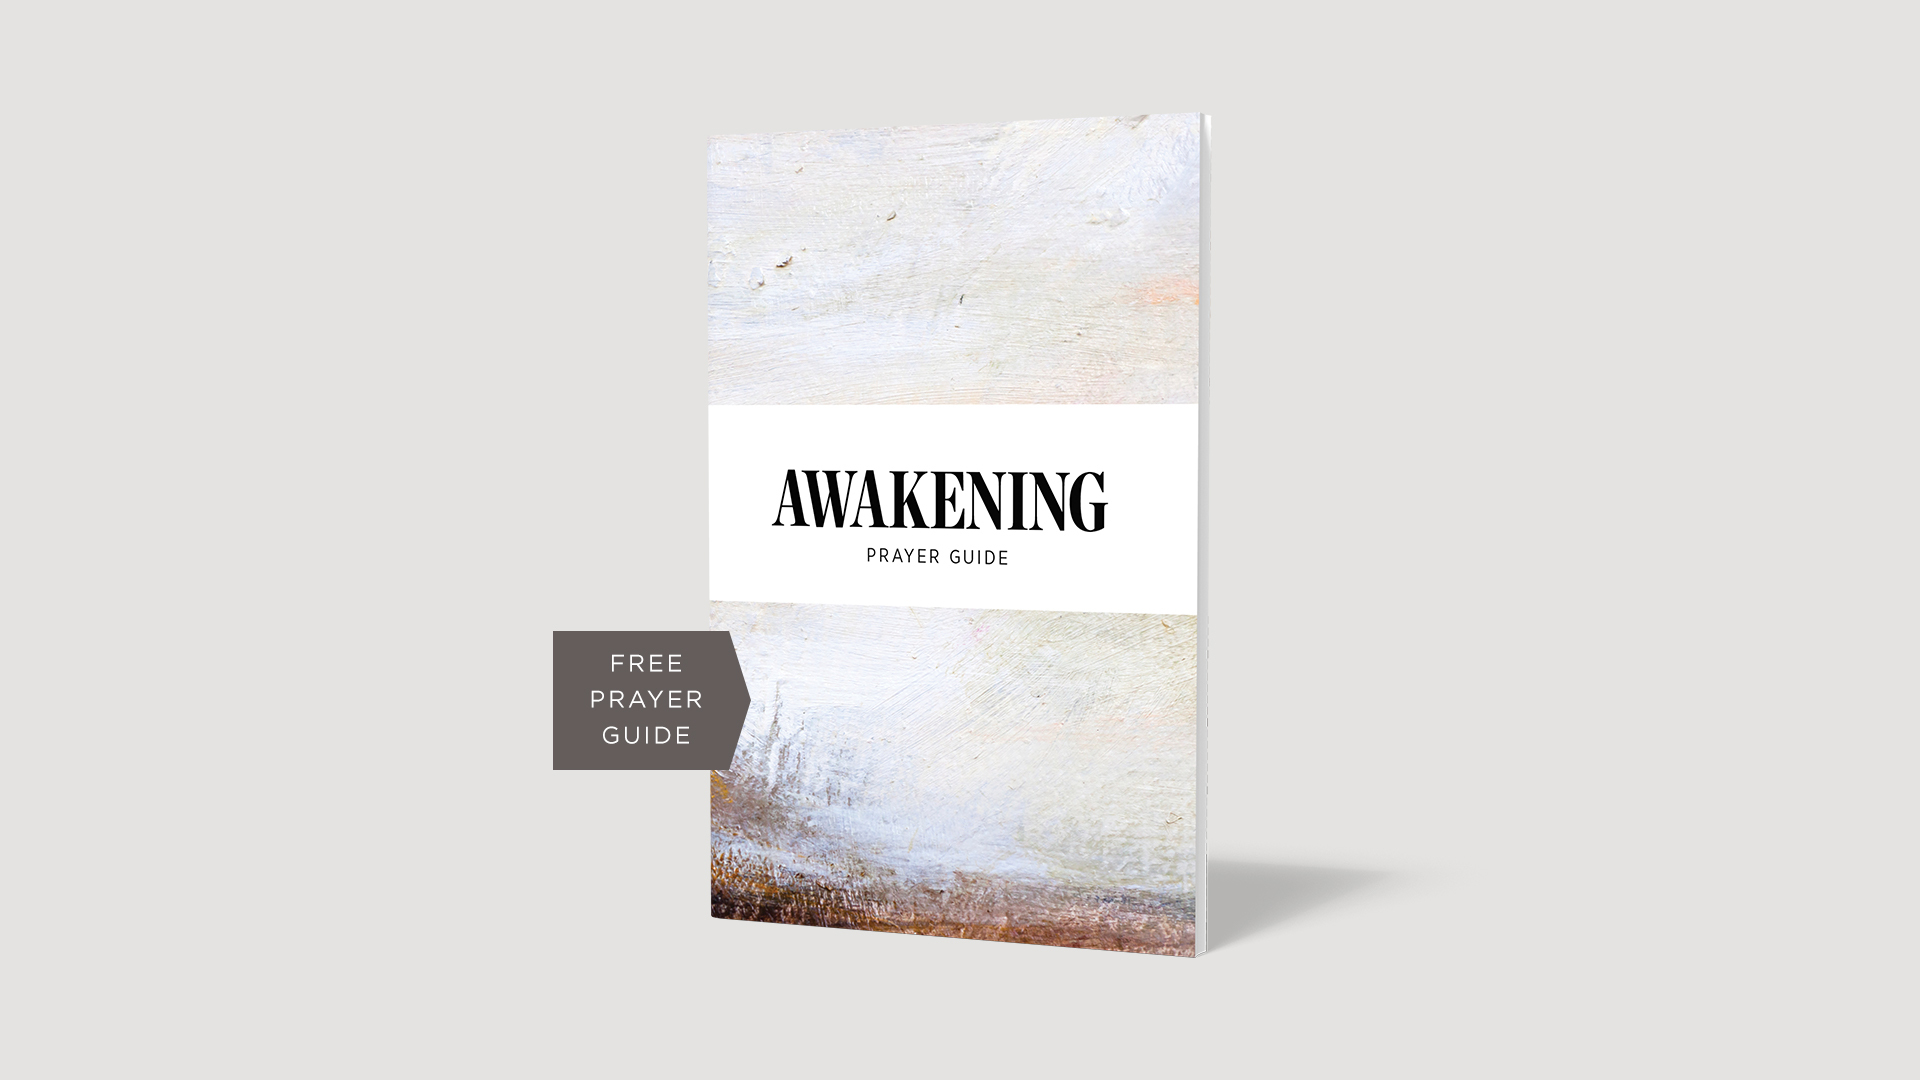 Will You Pray for Awakening? Download Your Free Prayer Guide